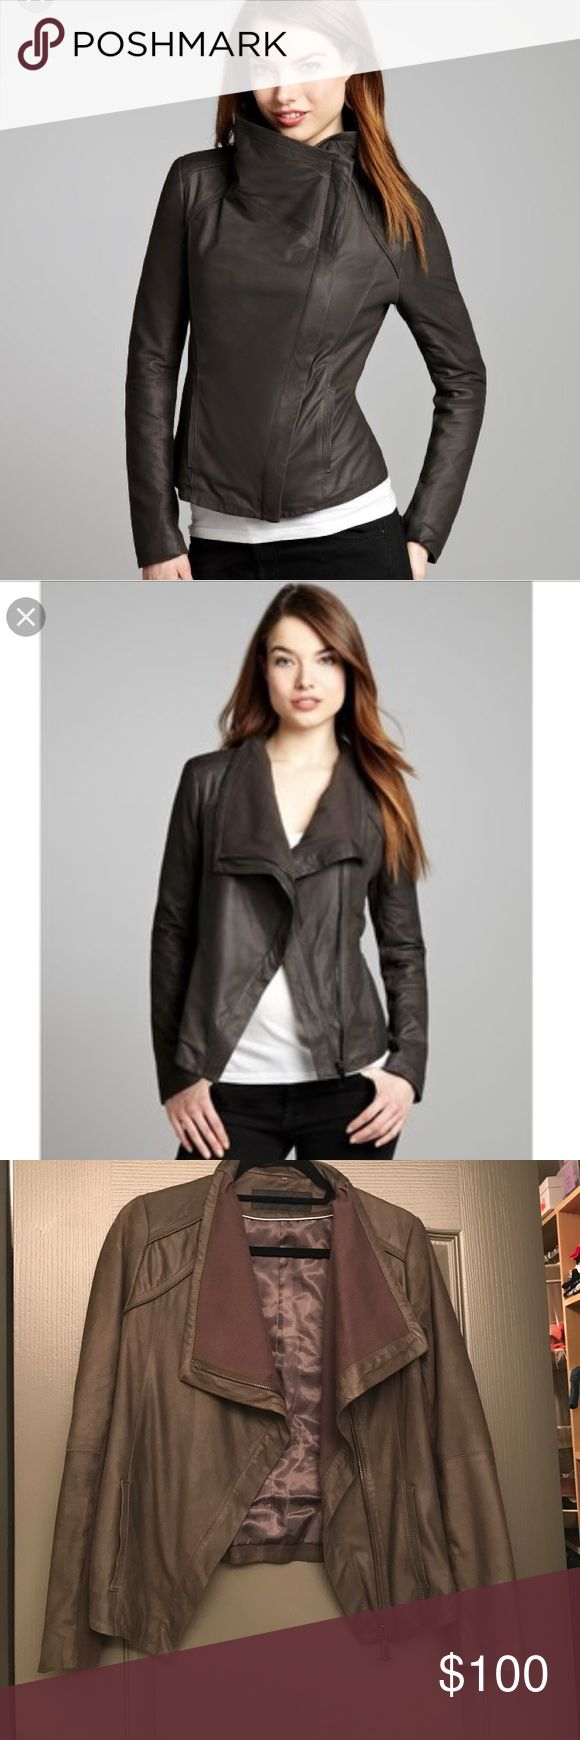 Eli Tahari Luxe Lambskin Leather Jacket - XS Ultra luxe and forever cool jacket! Awesome condition, small blemish in the left armpit area (not visible when you're wearing it) price to accommodate the blemish. Can be fixed at the dry cleaners or alterations place, this jacket is selling for over $500. Amazing piece . Elie Tahari Jackets & Coats